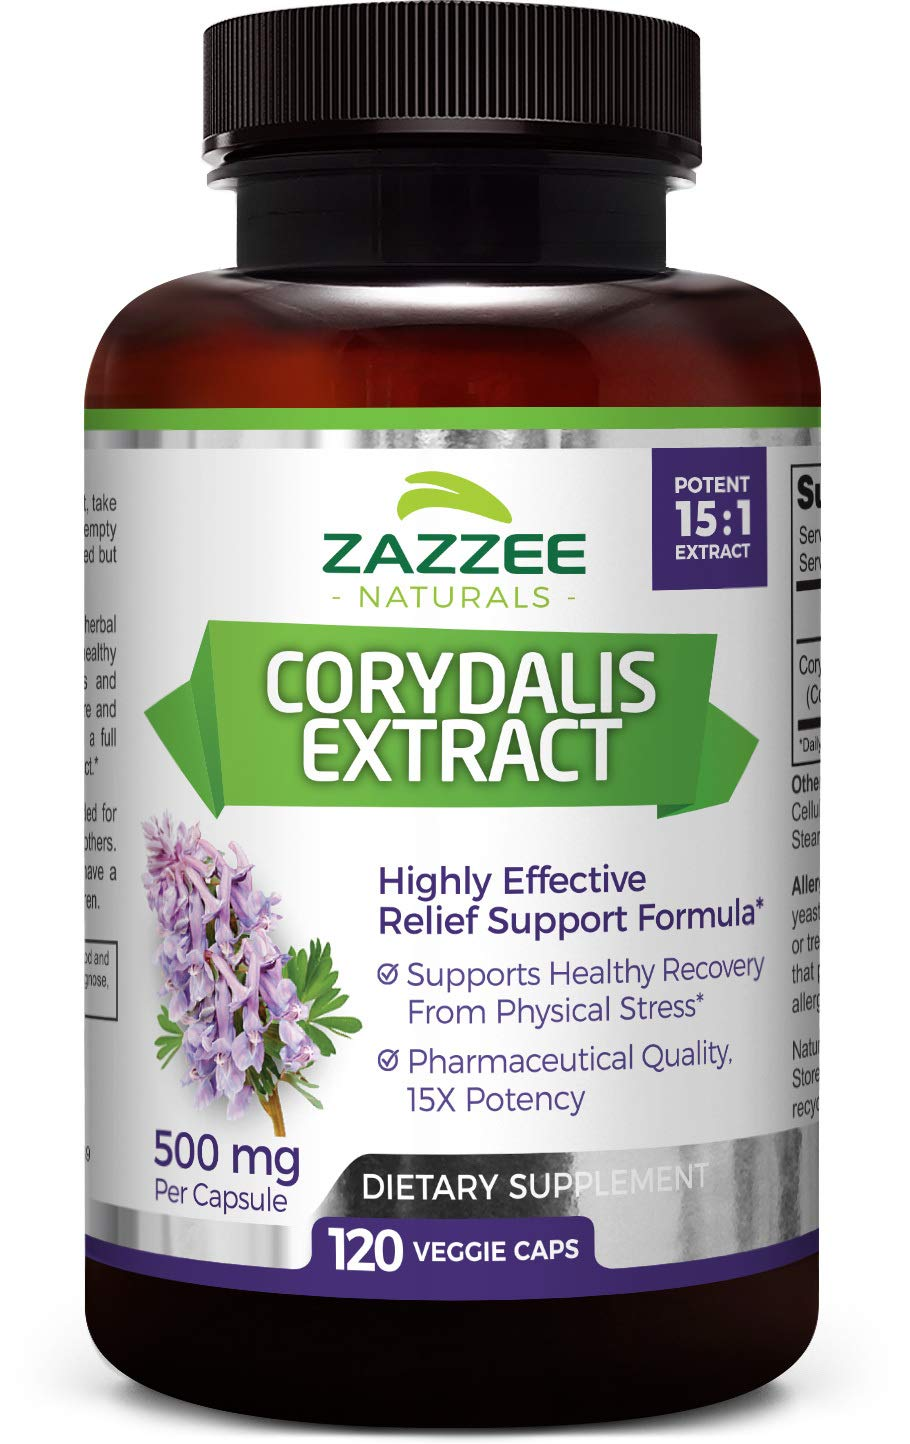 Zazzee Corydalis Extract, 500 mg, 120 Vegan Capsules, Powerful 15:1 Extract, Extra Strength Premium Grade, Vegan, All-Natural and Non-GMO, Natural Support for Pain Relief